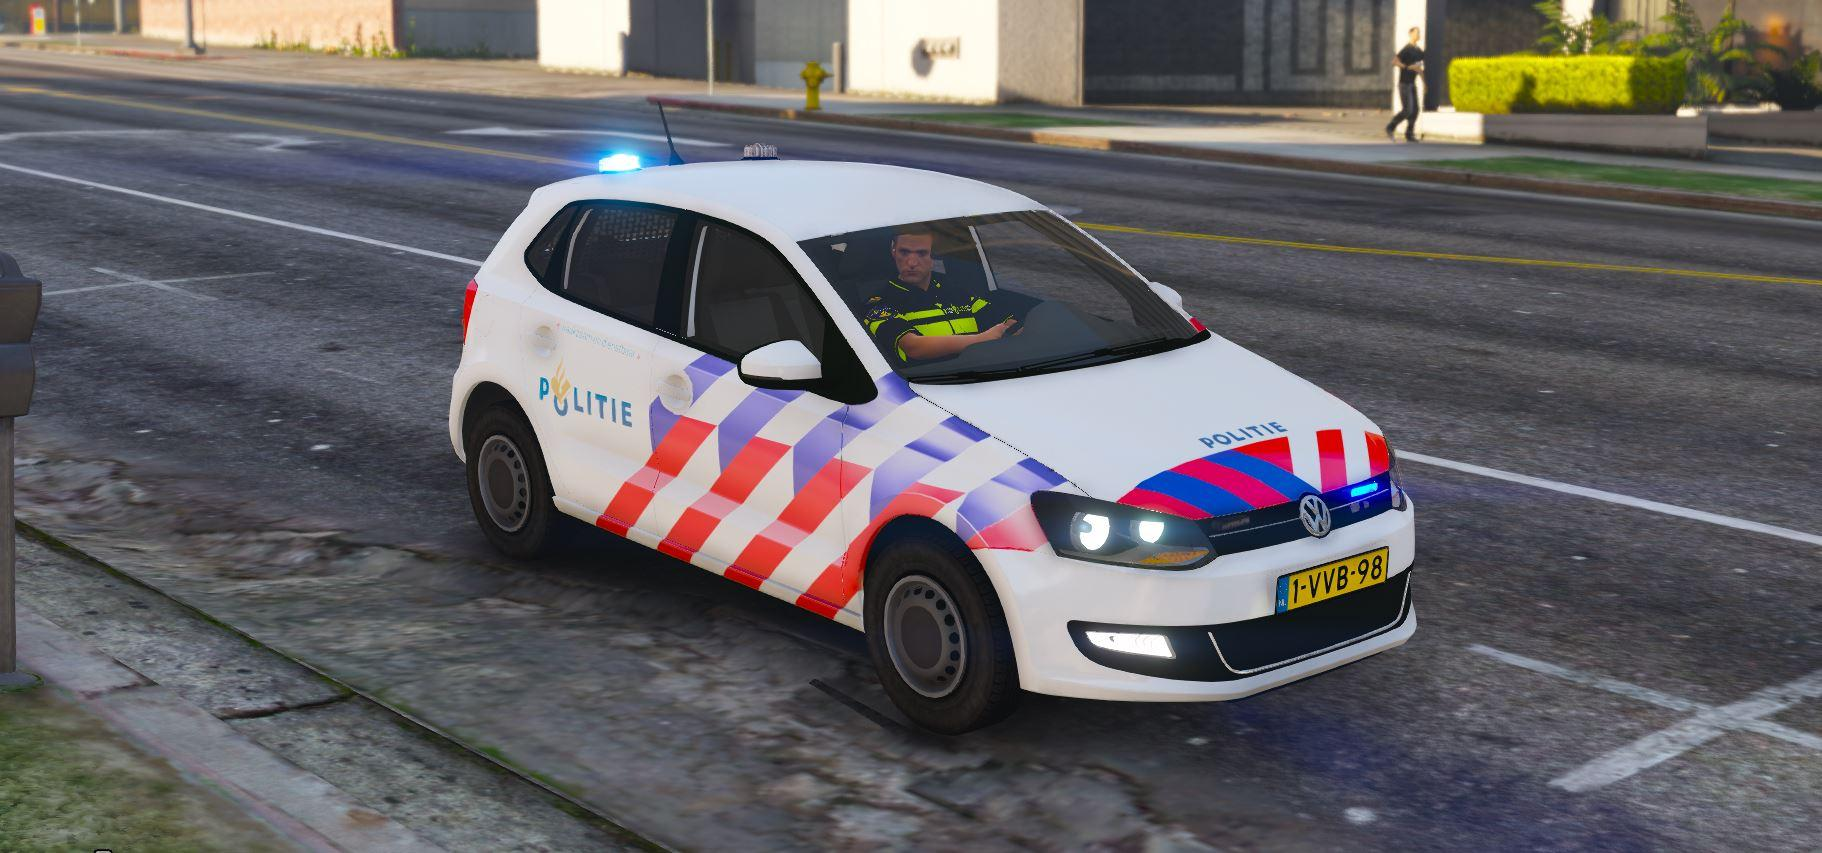 2011 volkswagen polo politie locked els 2 versies gta5. Black Bedroom Furniture Sets. Home Design Ideas